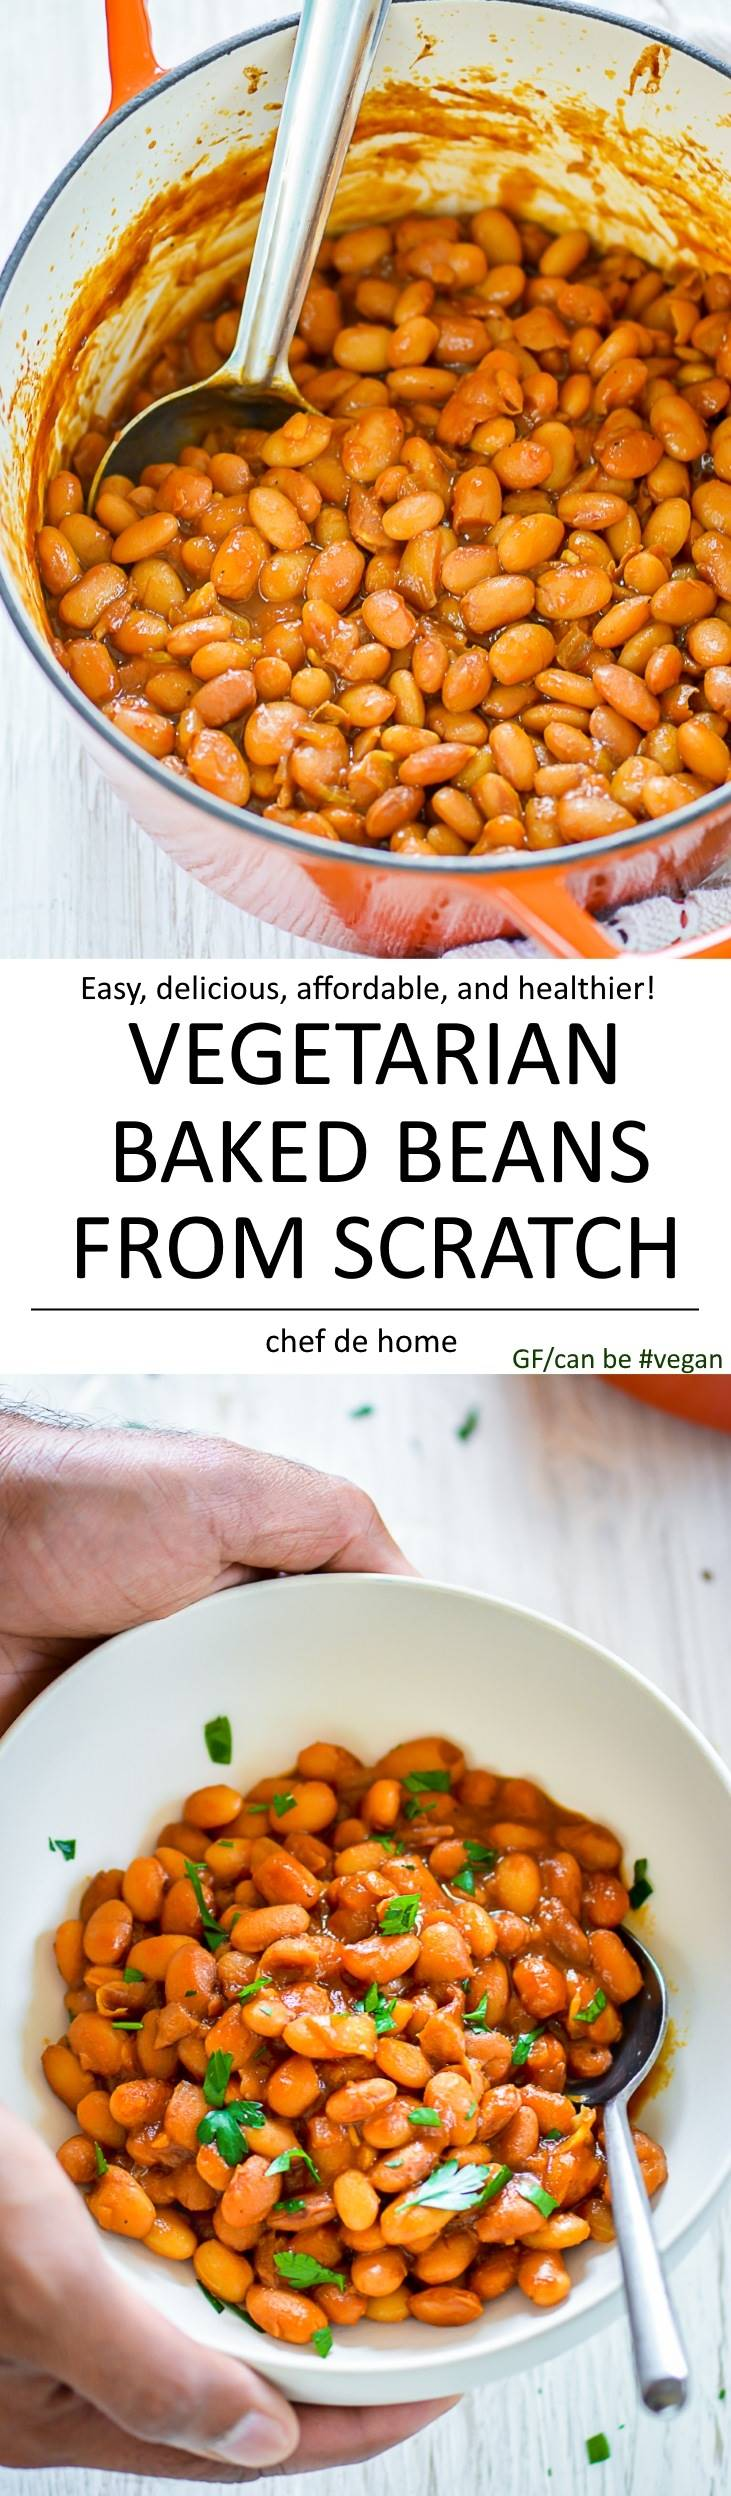 Vegetarian baked beans flavorful healthy and made from scratch | chefdehome.com